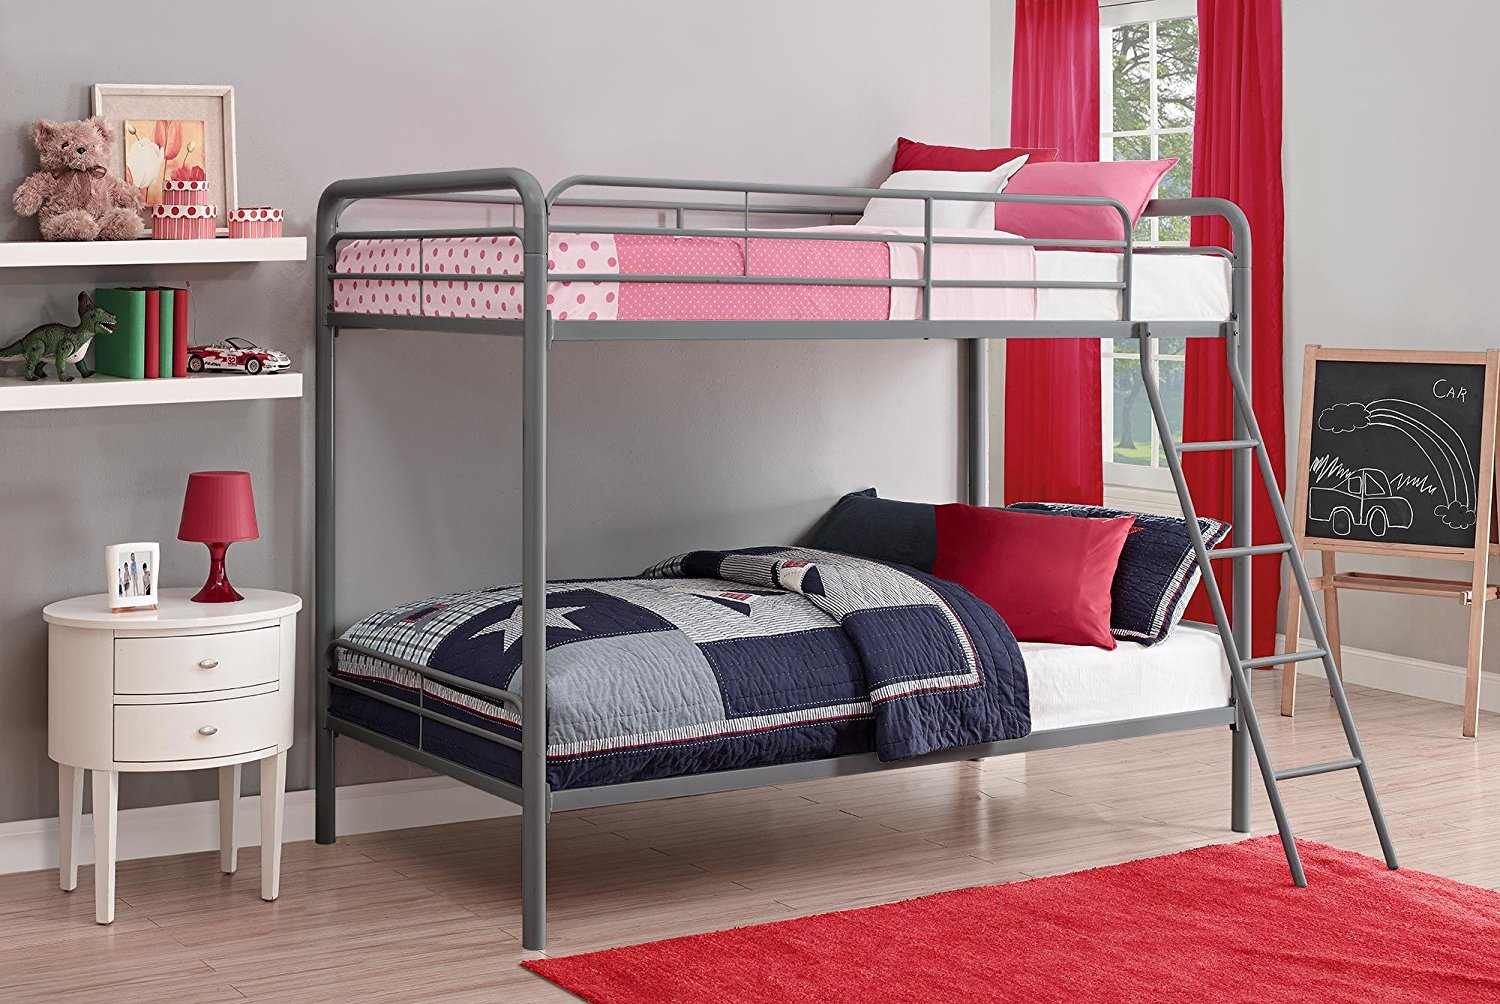 Best Bunk Beds 2018 Top 10 Reviews Comparison